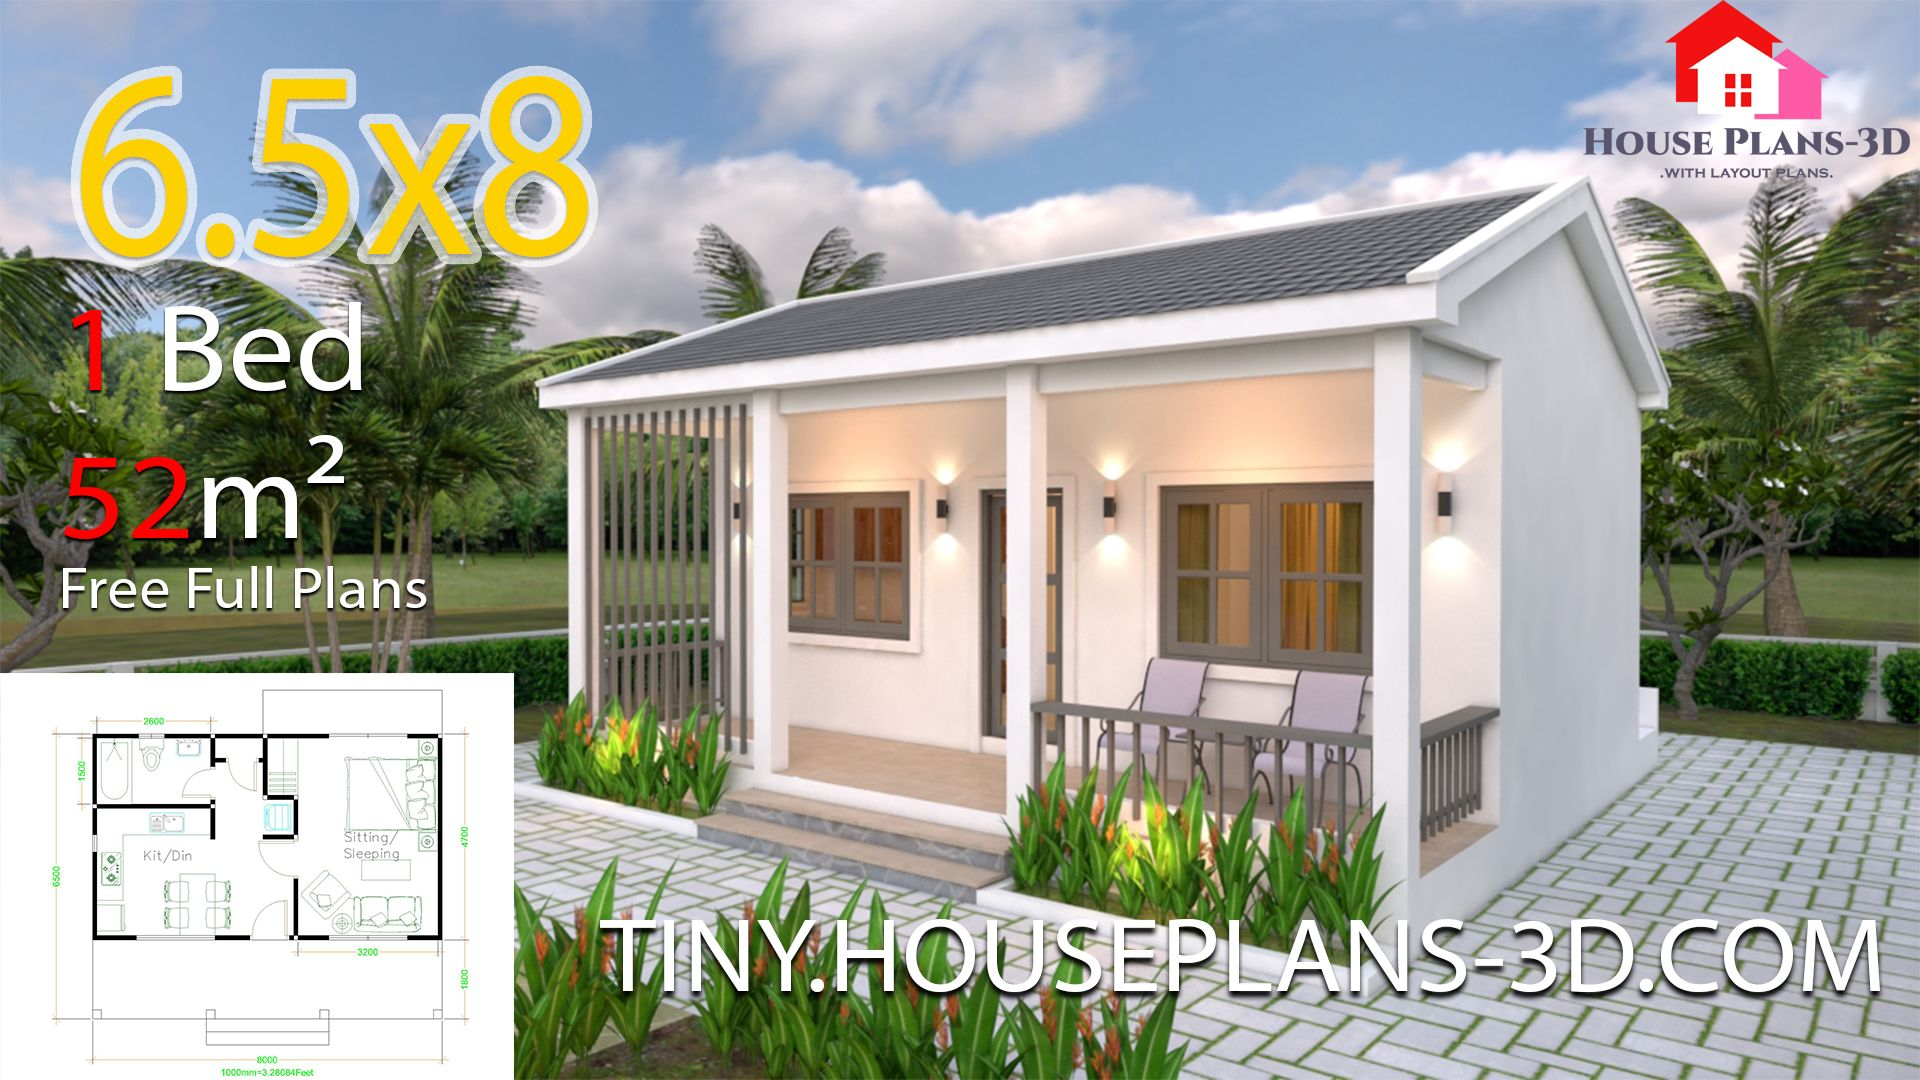 Small House Plans 6 5x8 With One Bedrooms Gable Roof Tiny House Plans Small House Design Plans Small House Design House Plans